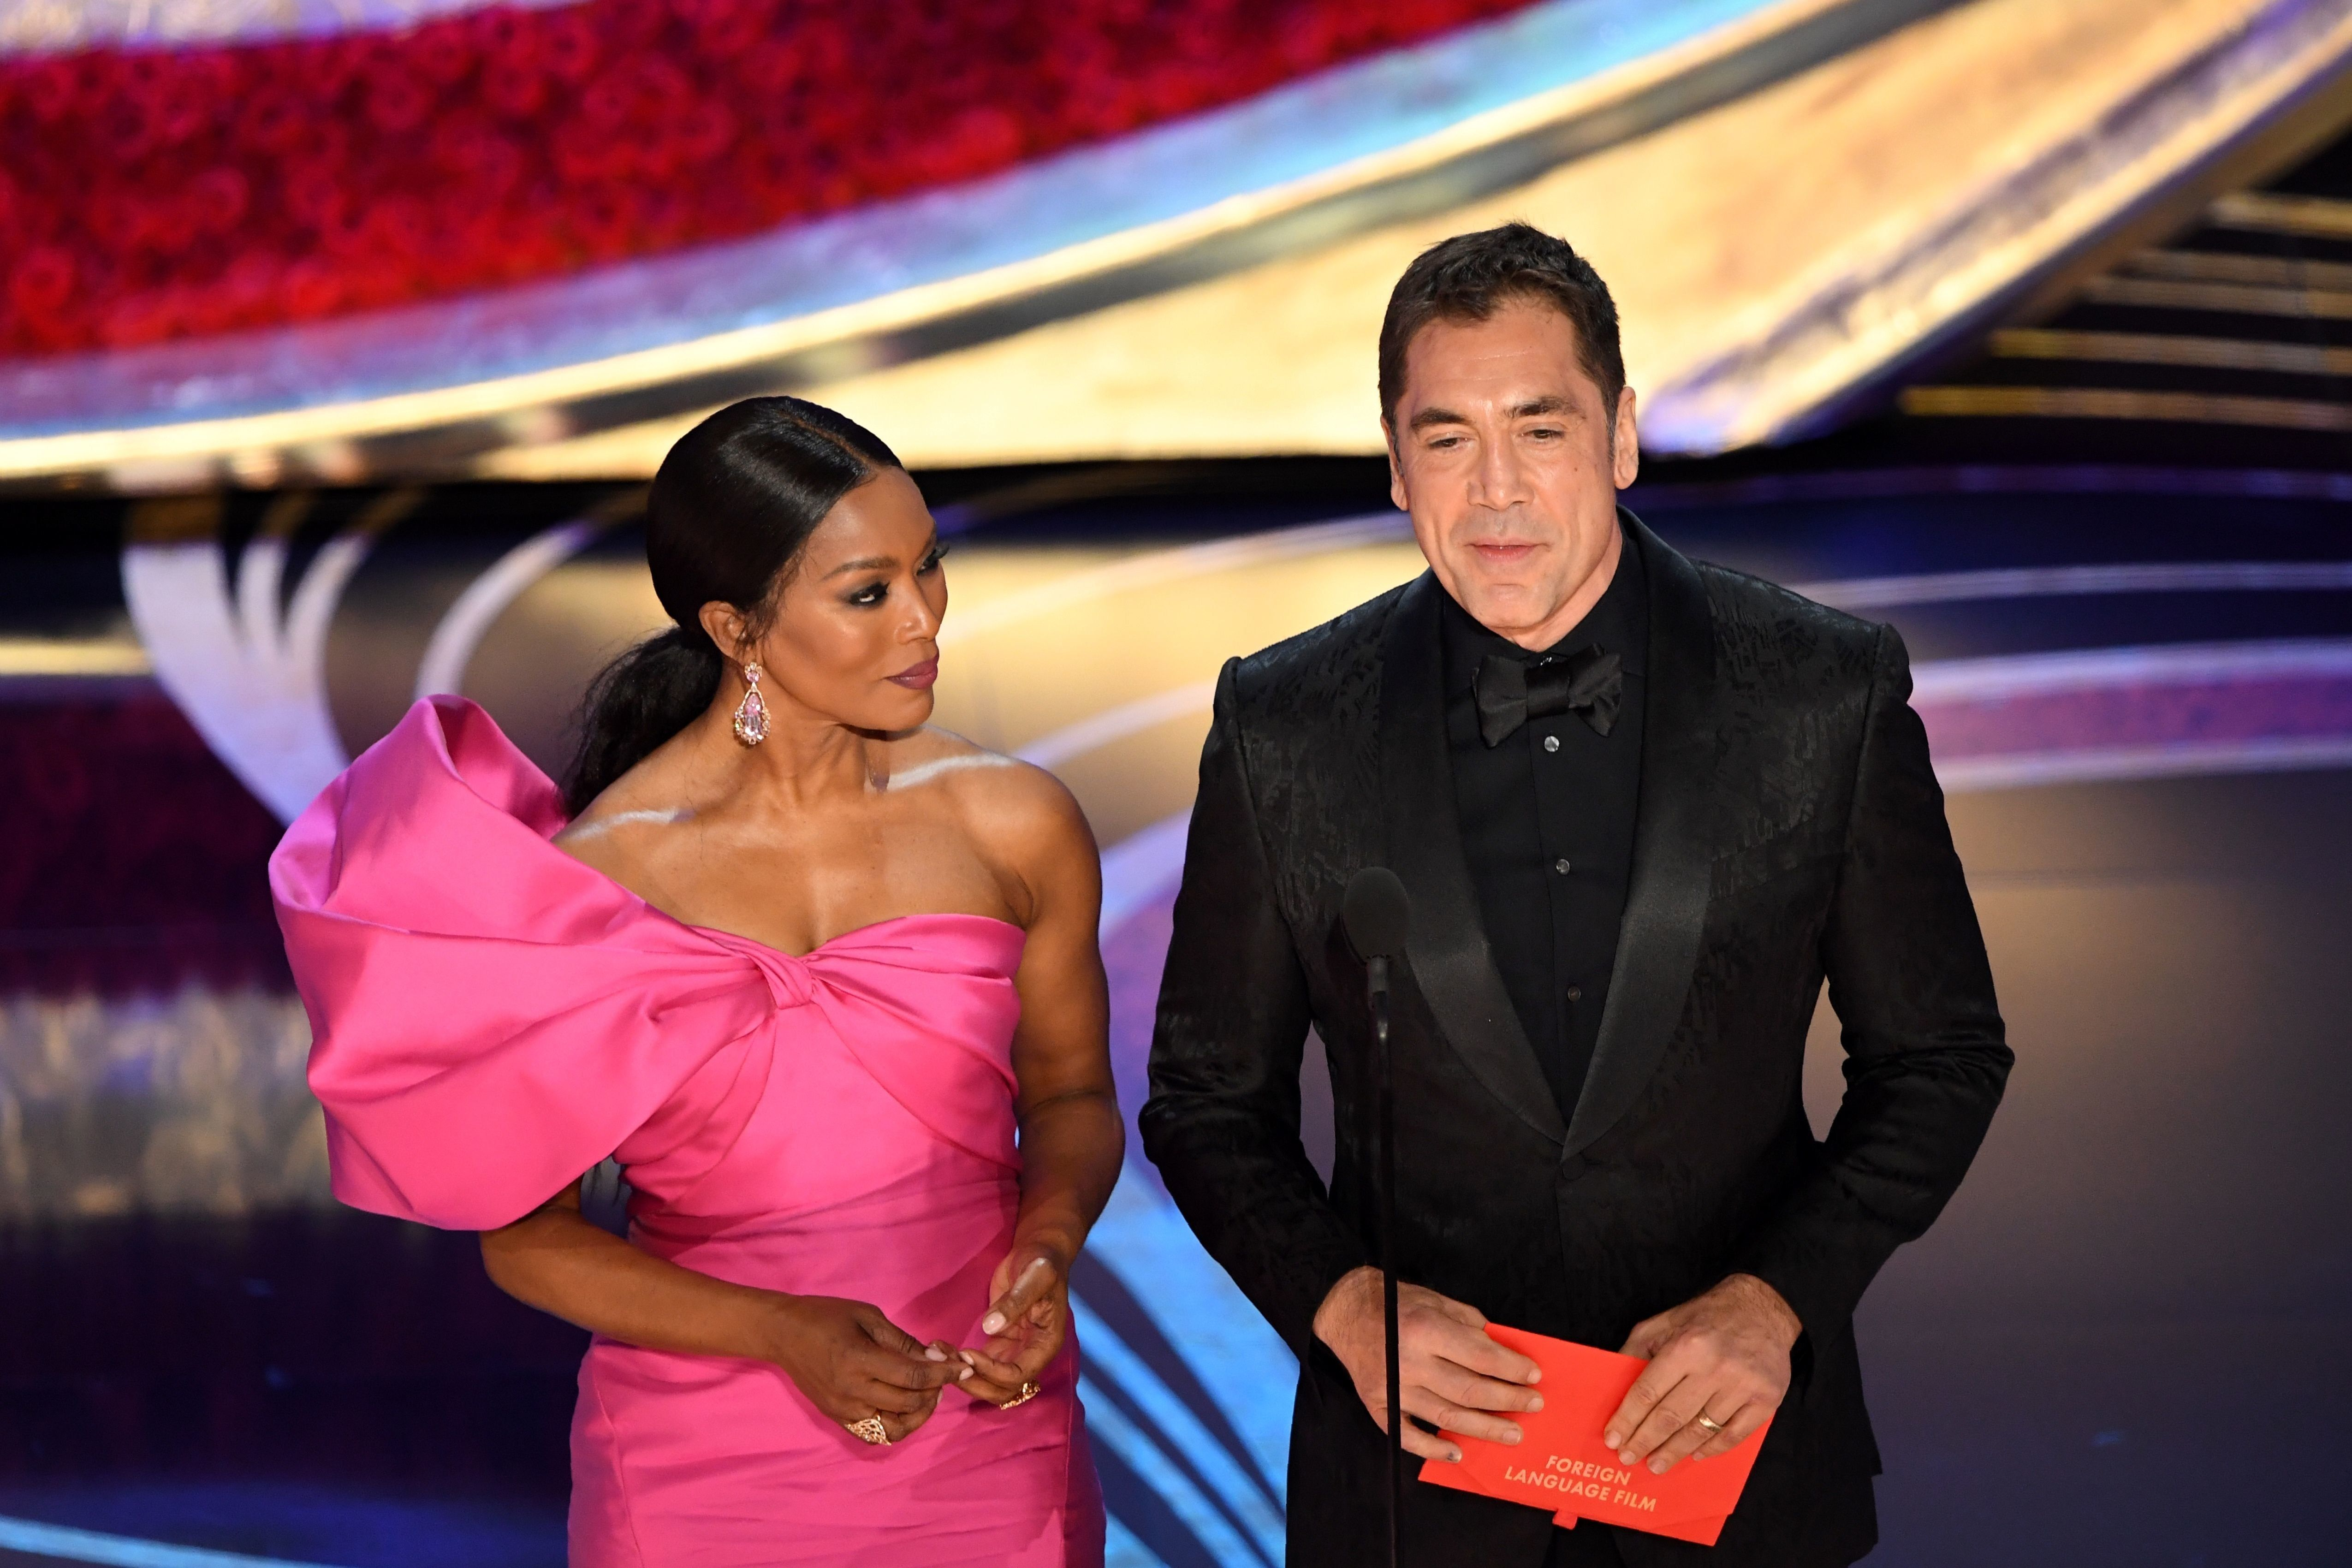 Javier Bardem Says 'There Are No Borders Or Walls' While Presenting Oscar In